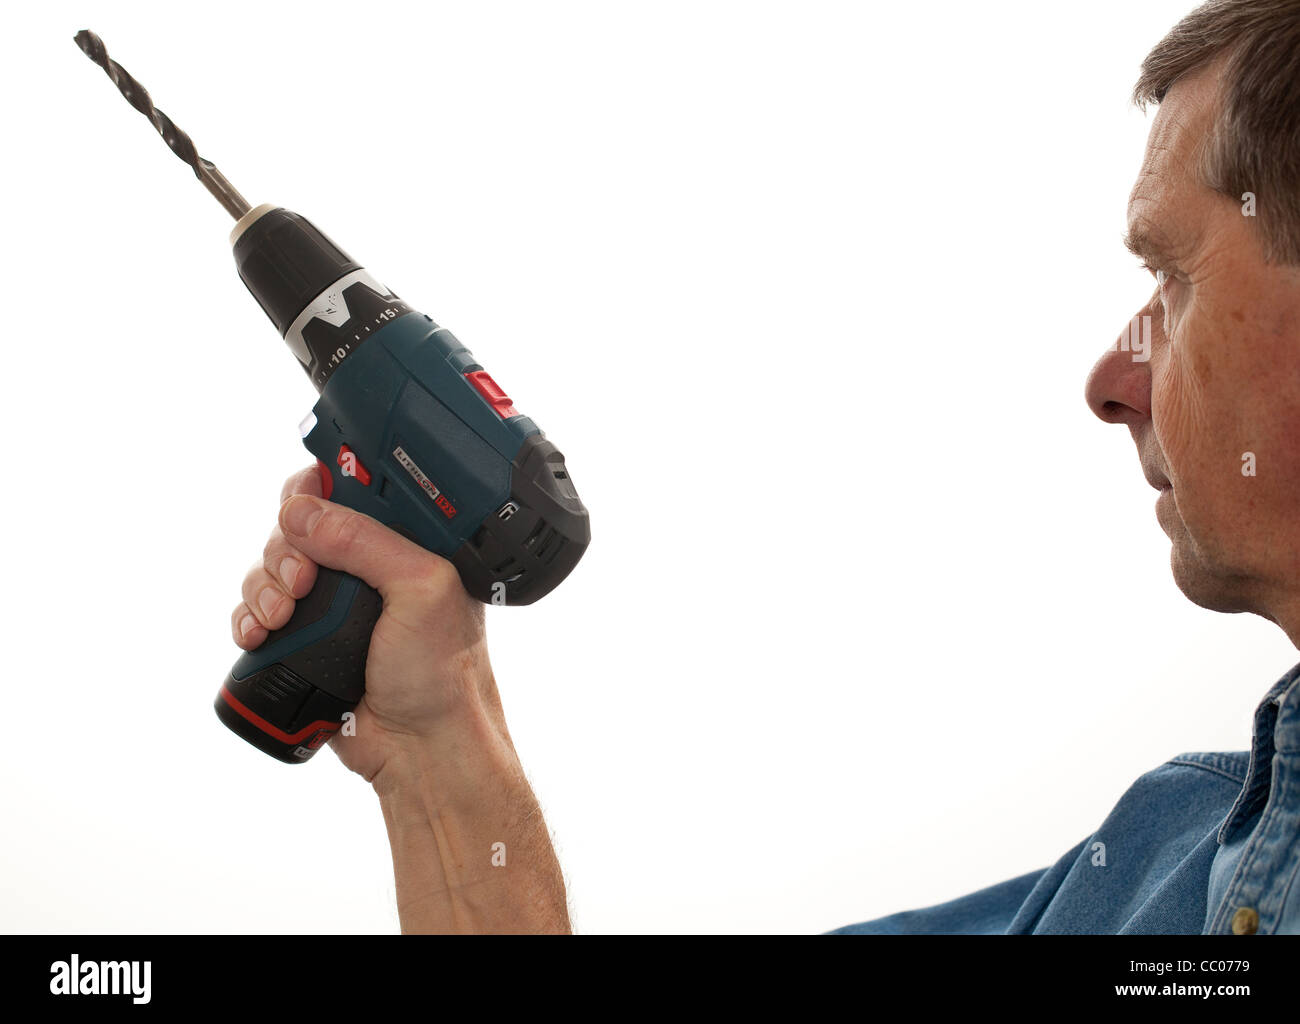 Man holding a power drill isolated against white - Stock Image